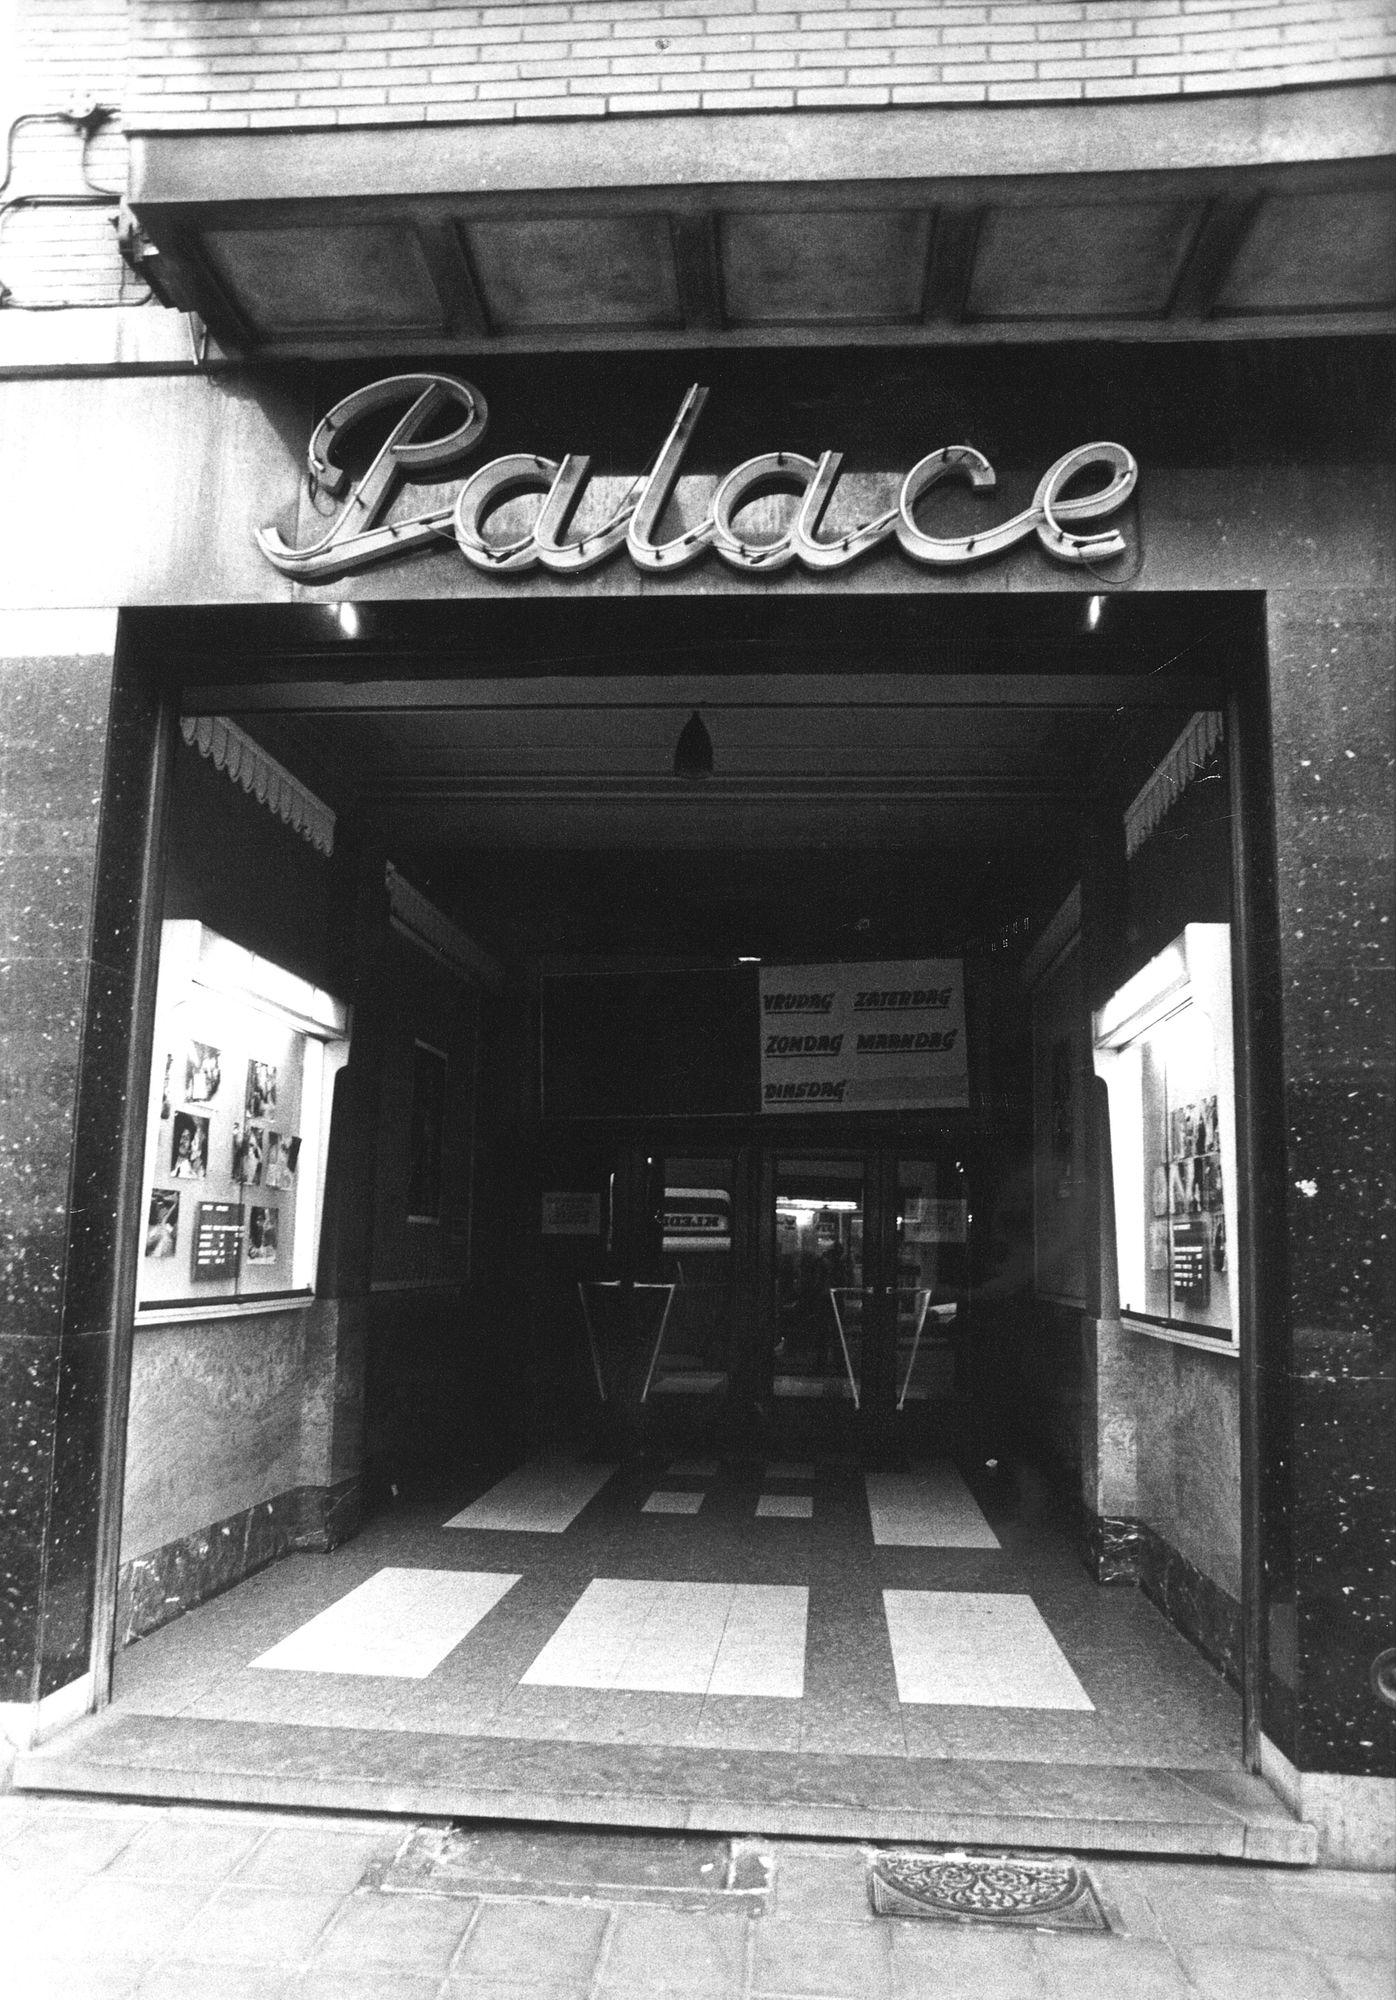 Ciné Palace in 1985